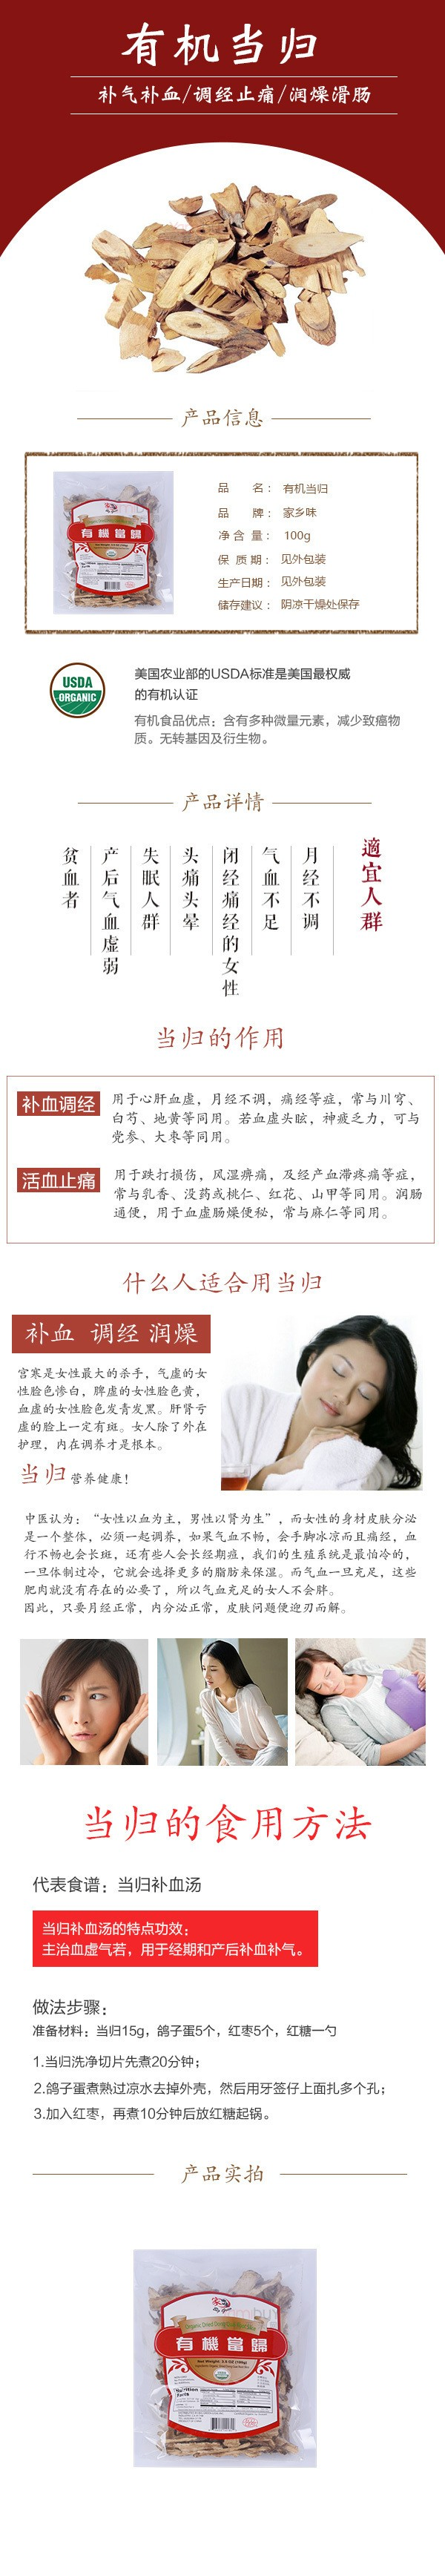 Chinese Website Of China Food And Drug Administration